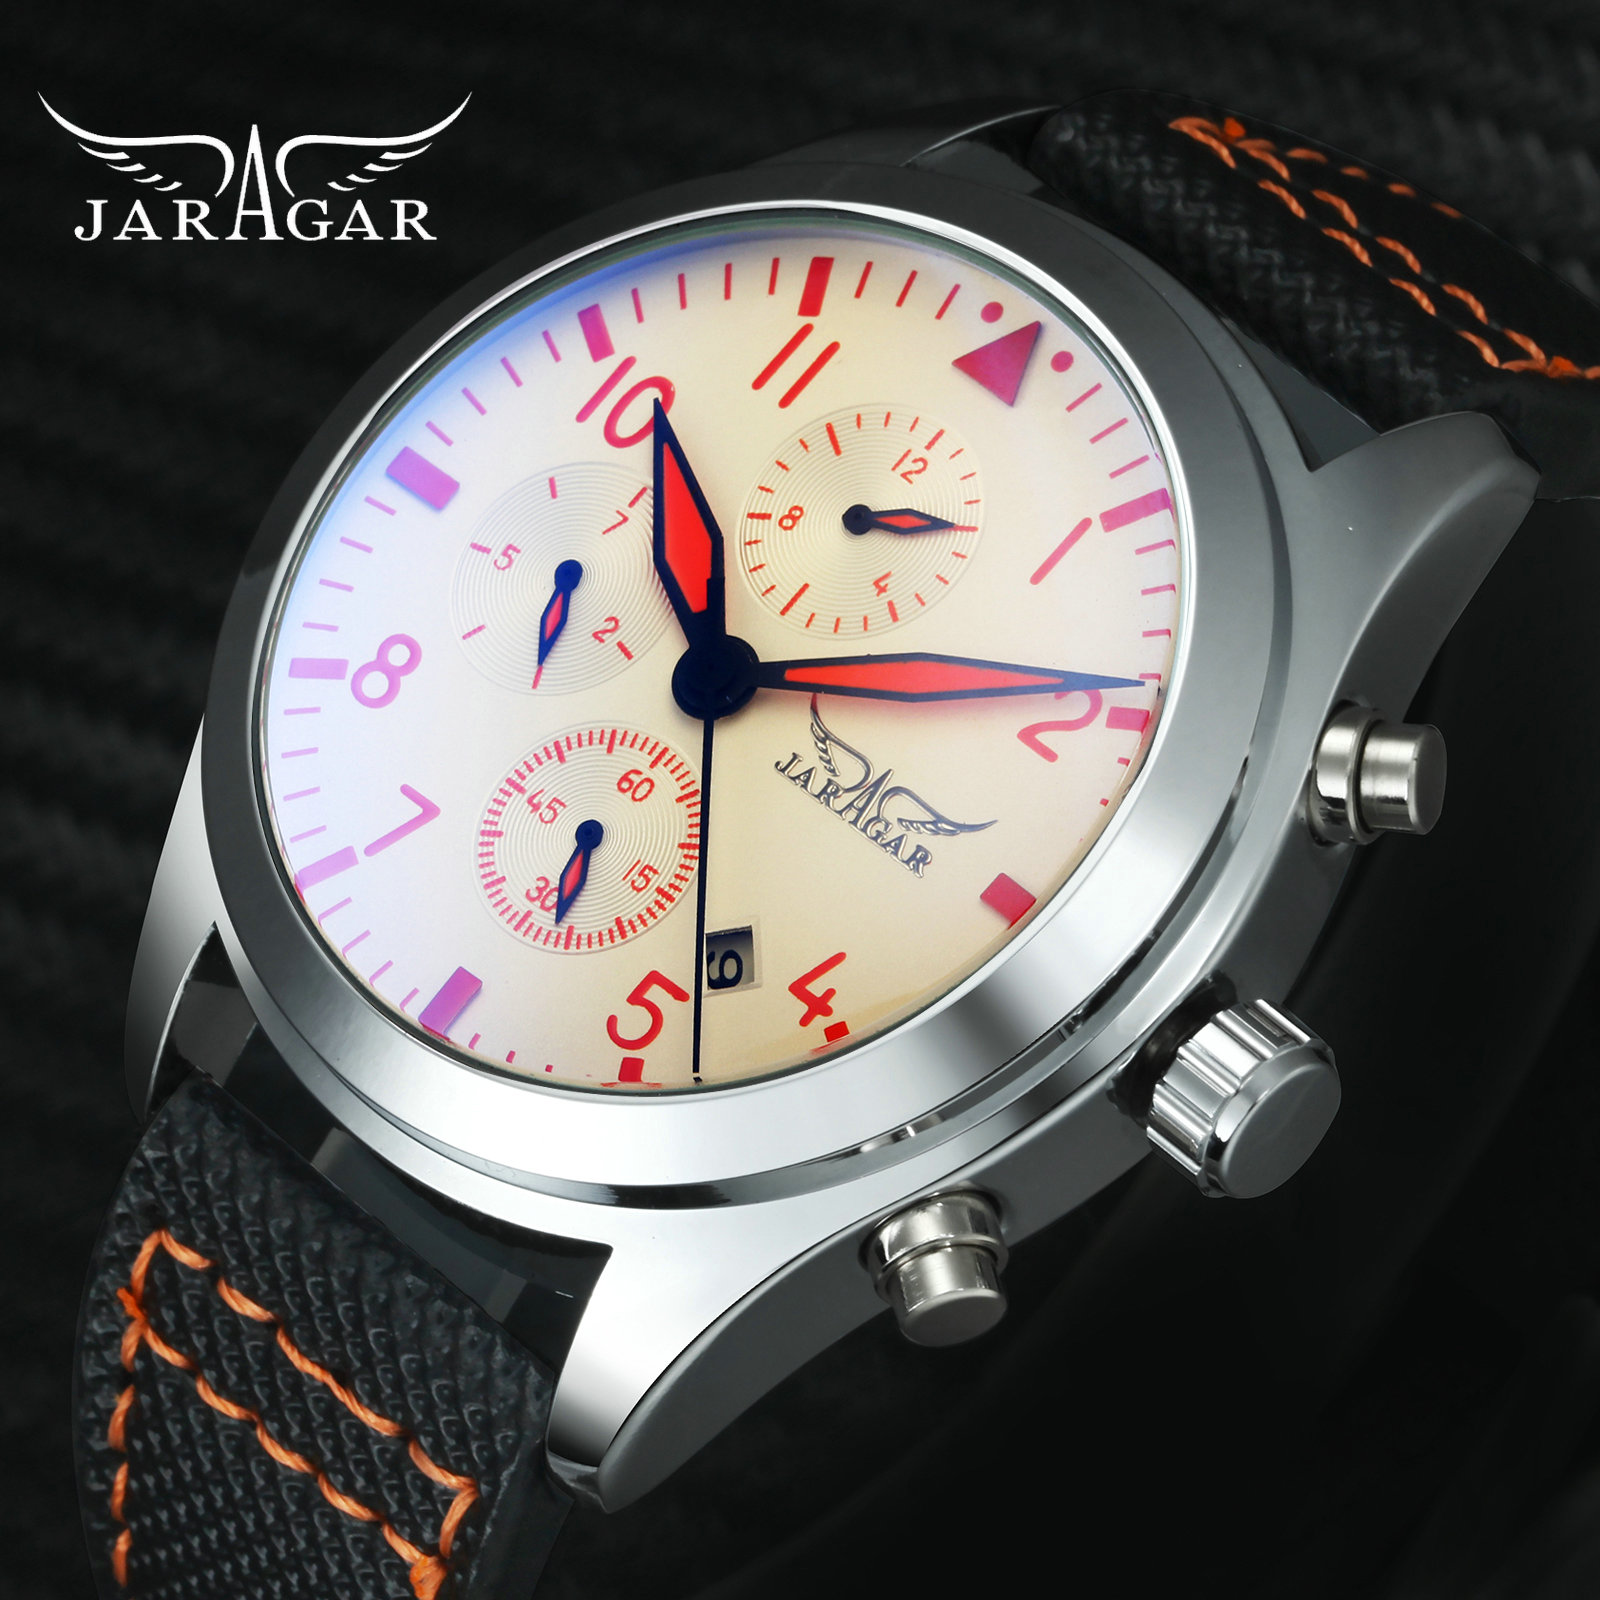 JARAGAR Men Mechanical Watch Blue Coated Glass Leather Band Working Sub-dials Arabic Number Dial Top Fashion Men Auto Wristwatch